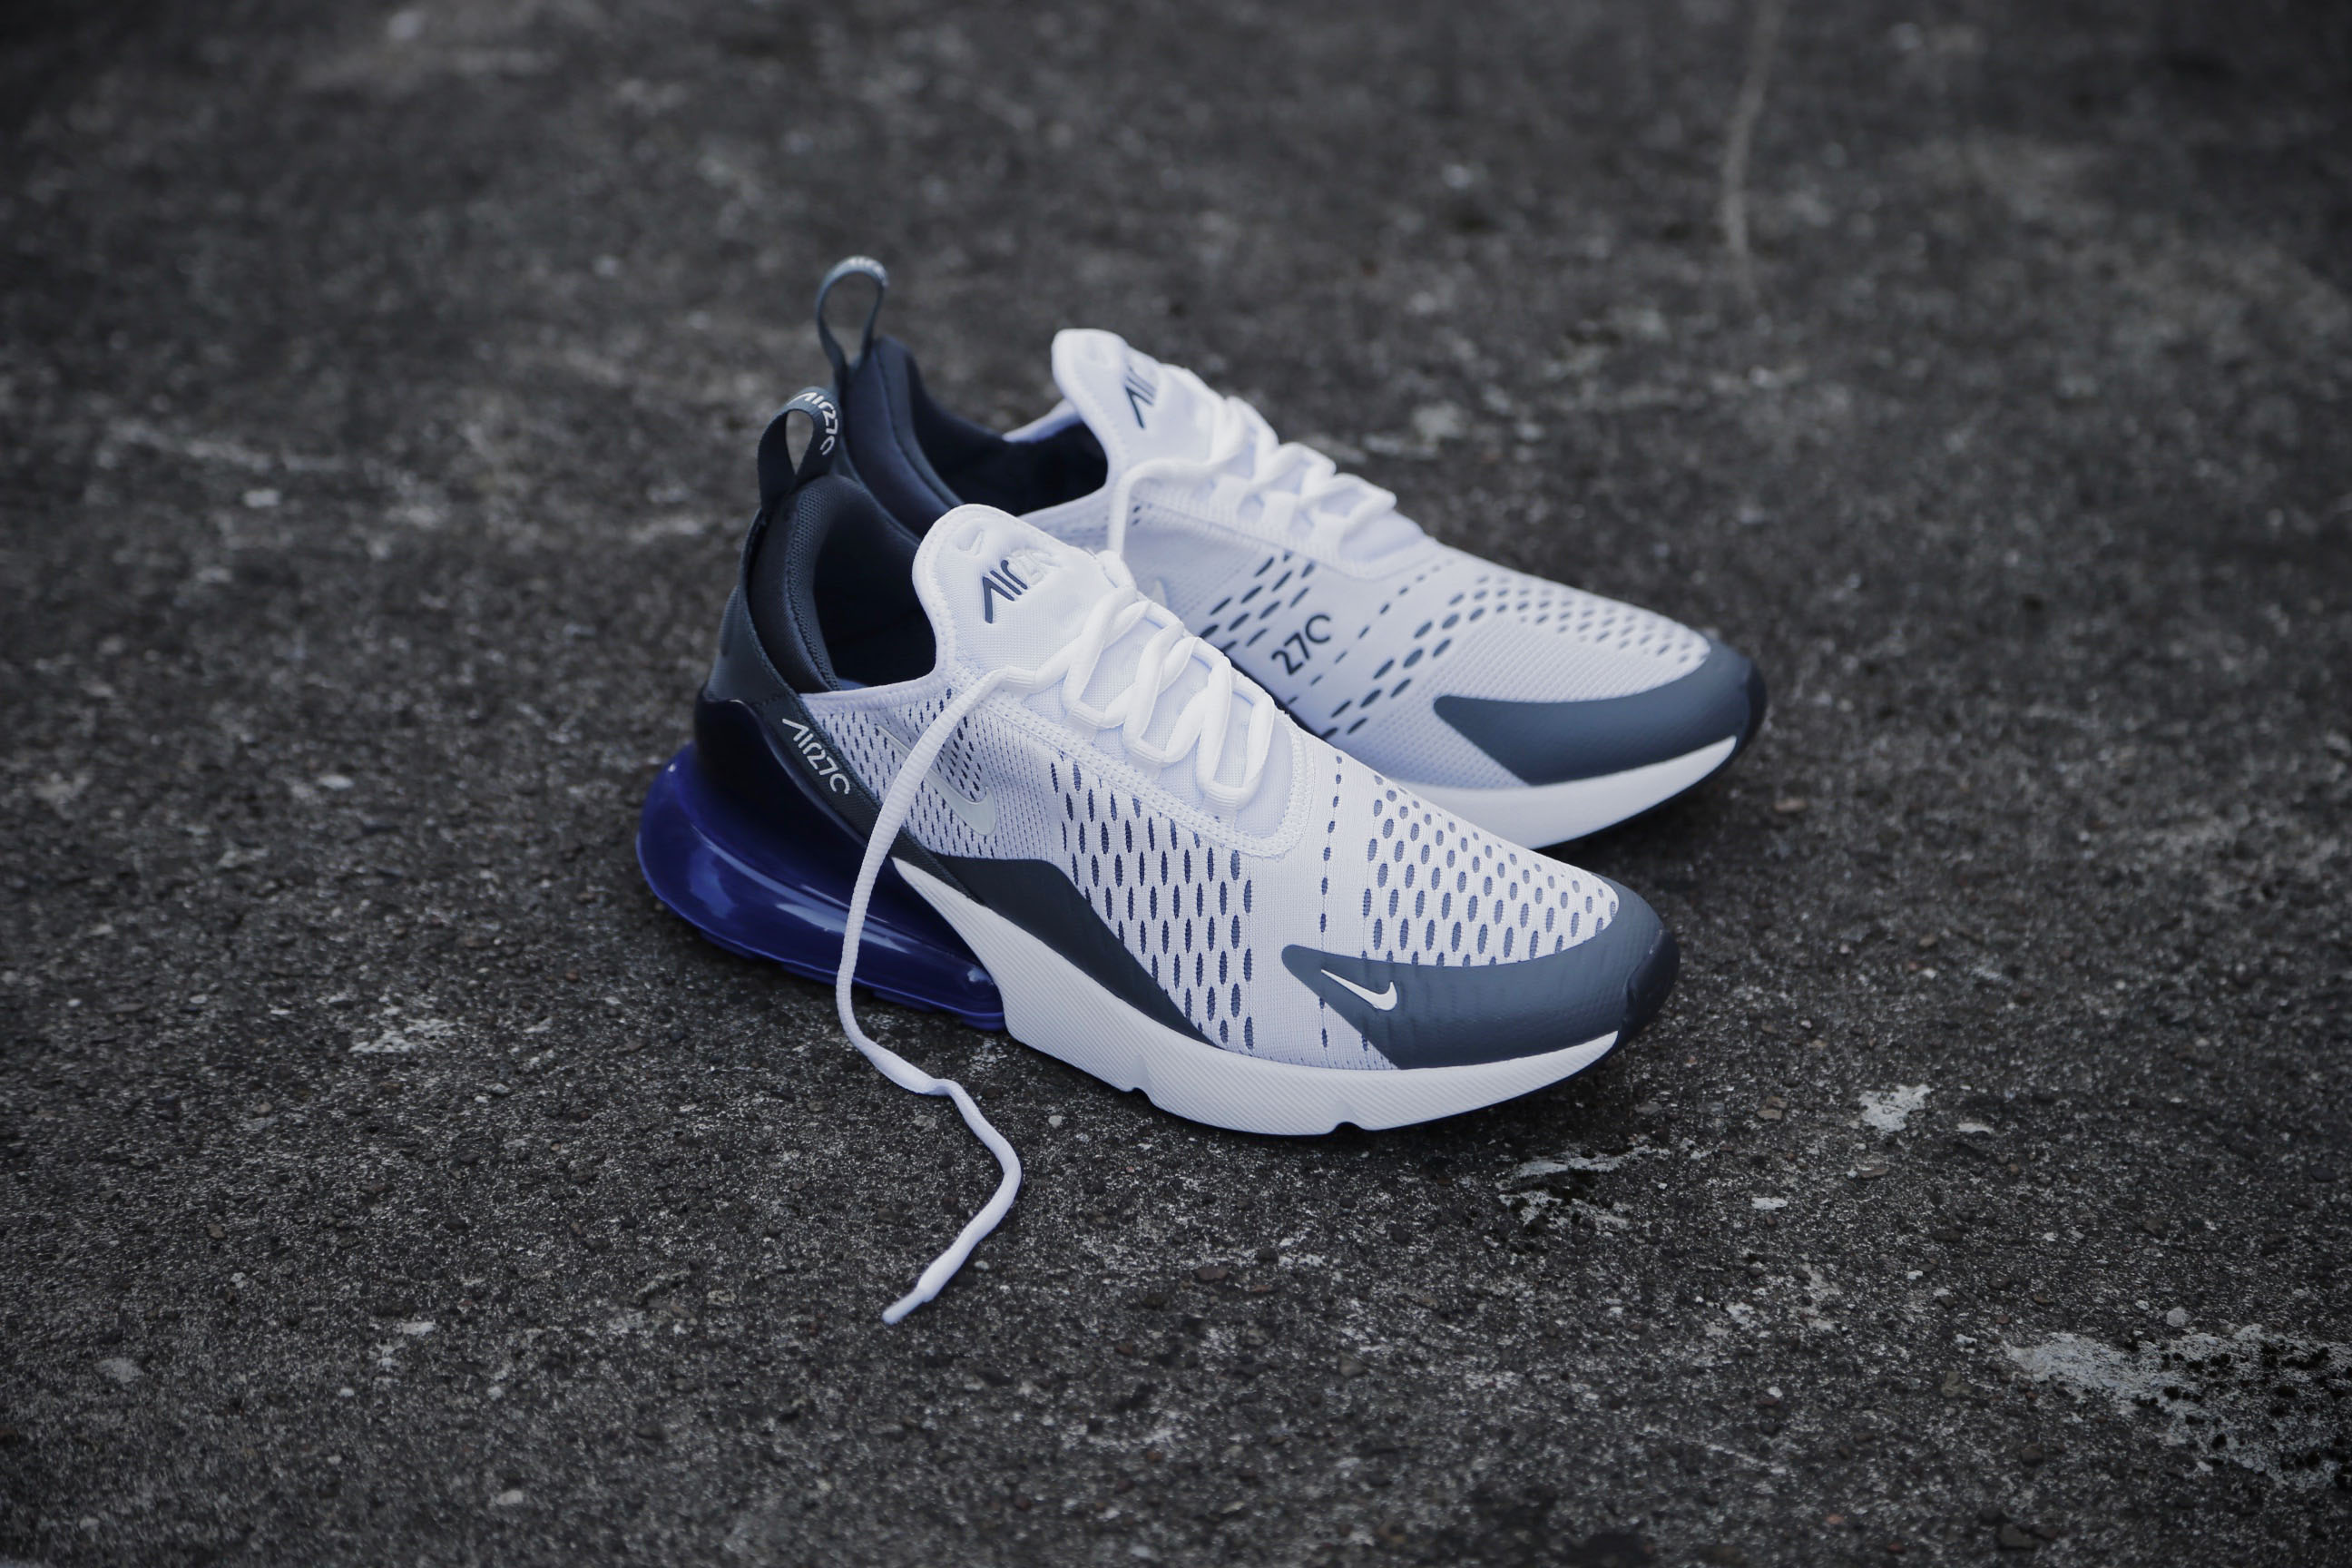 Nike Air Max 270 White Persian Violet Dark Grey